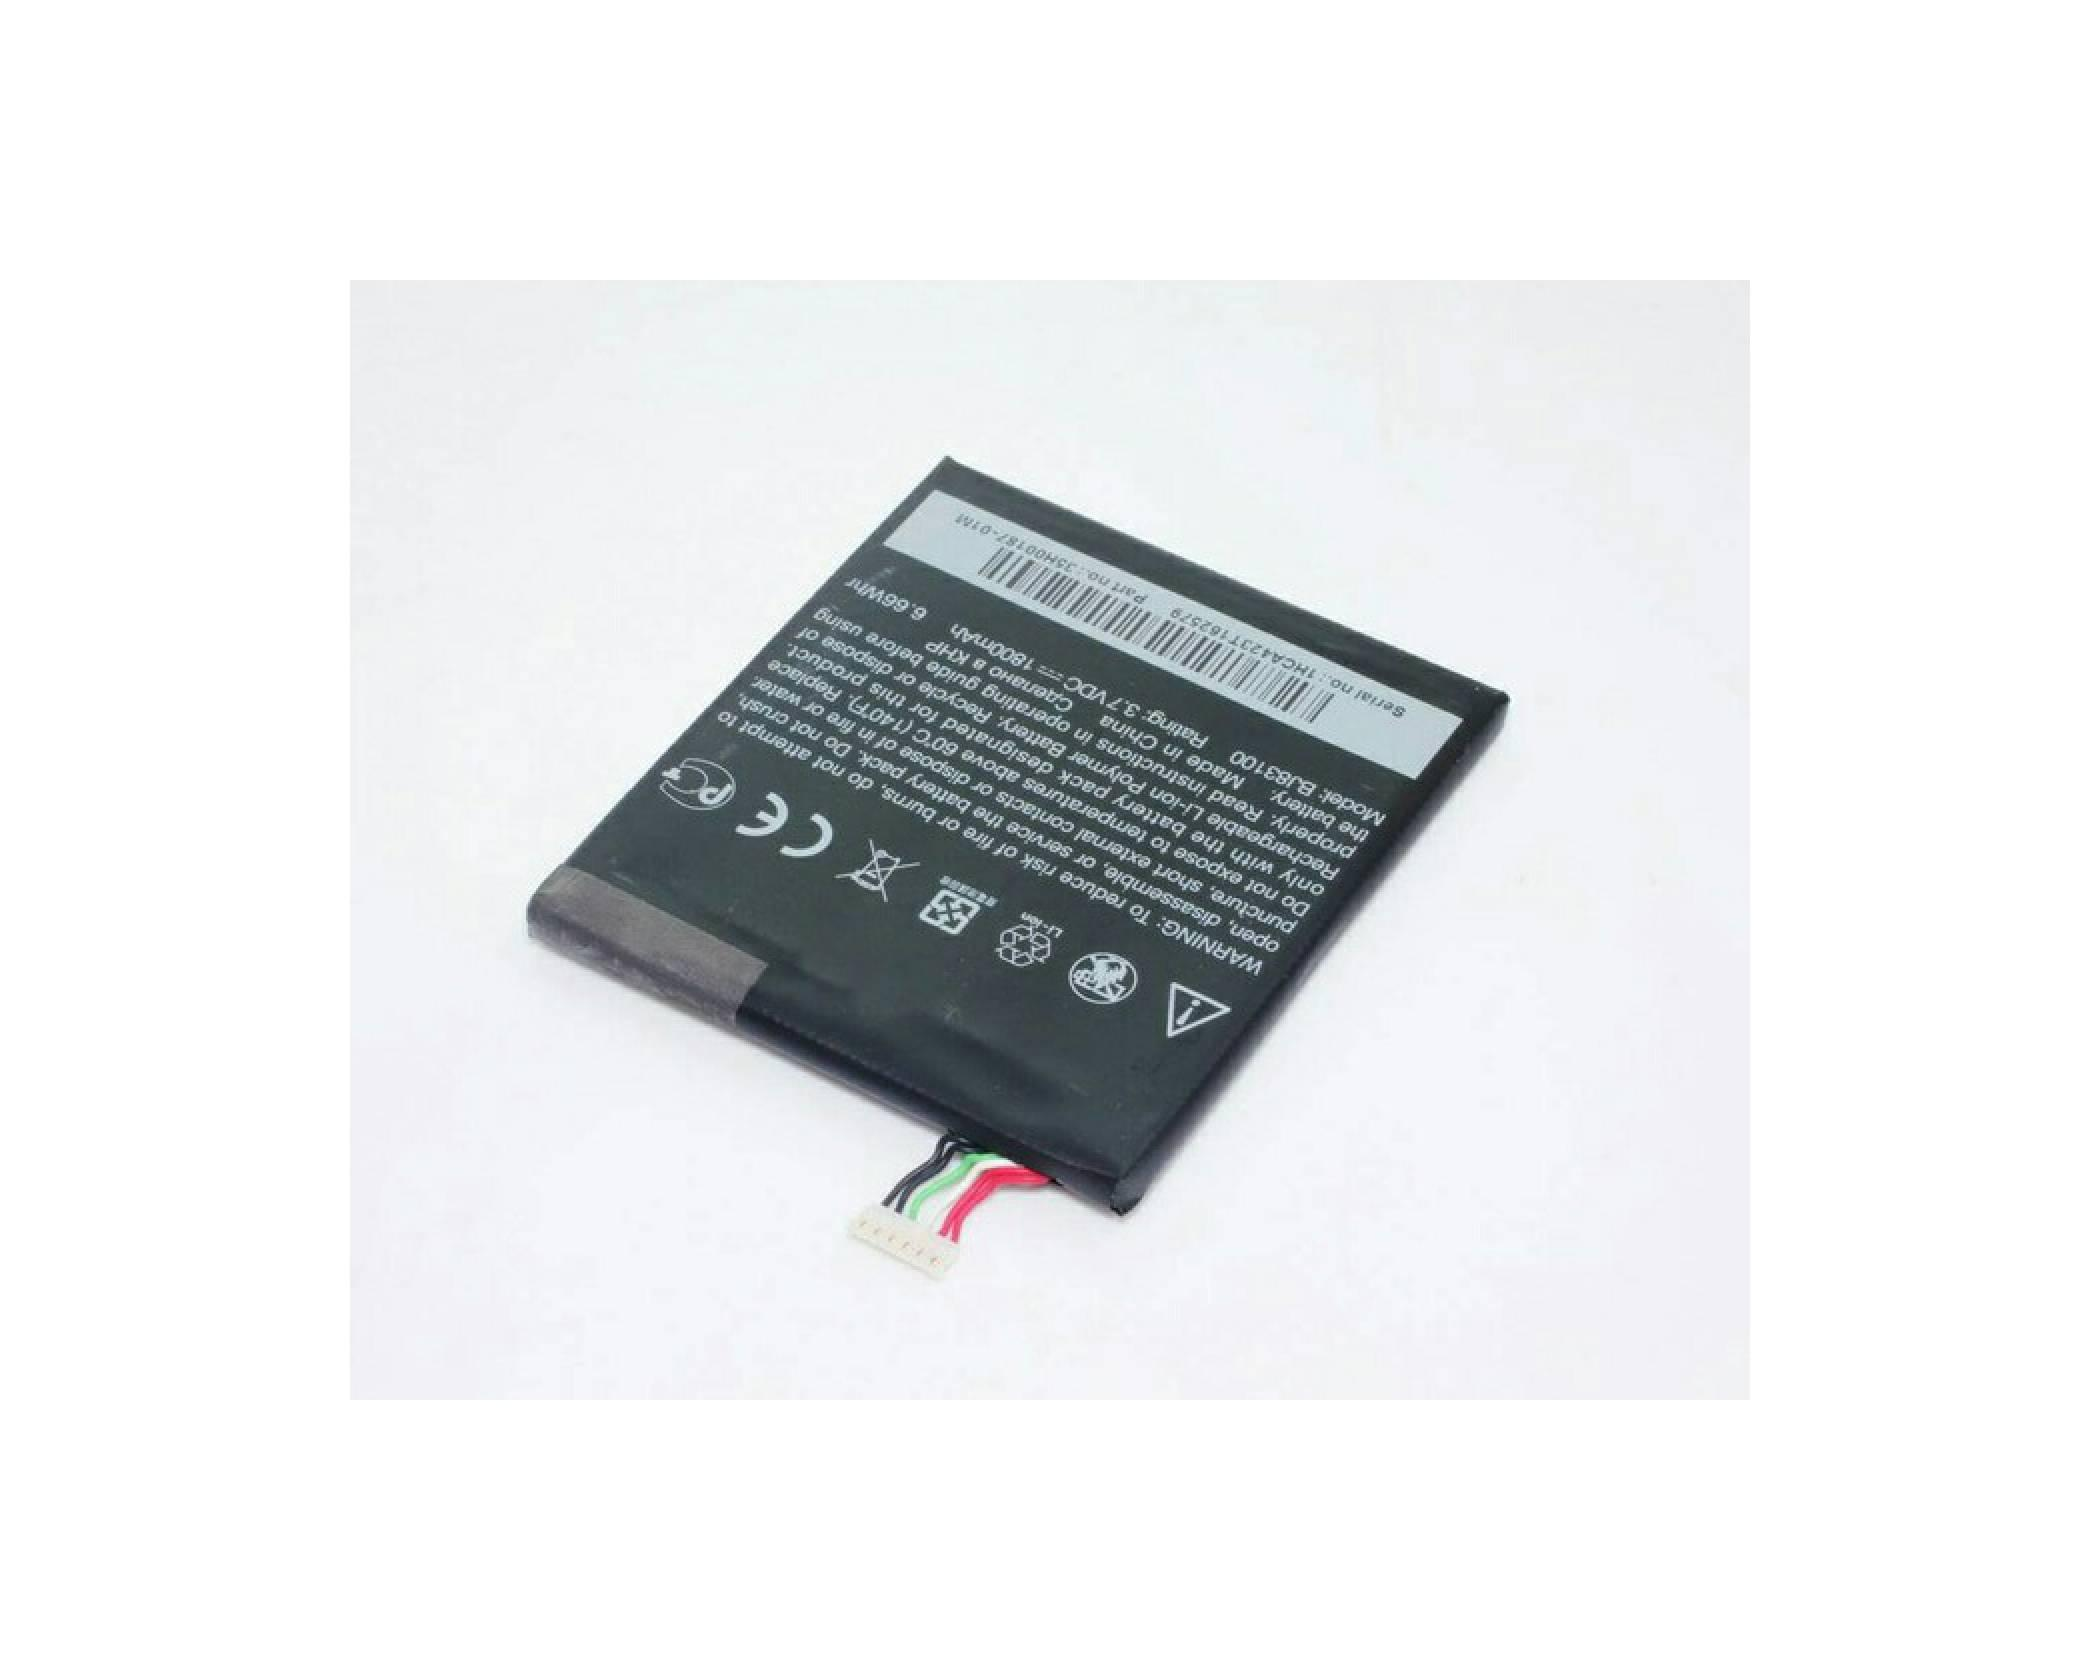 Batre Batrei Baterai Battery HTC ONE X/ ONE XL/BJ83100 Original Batere